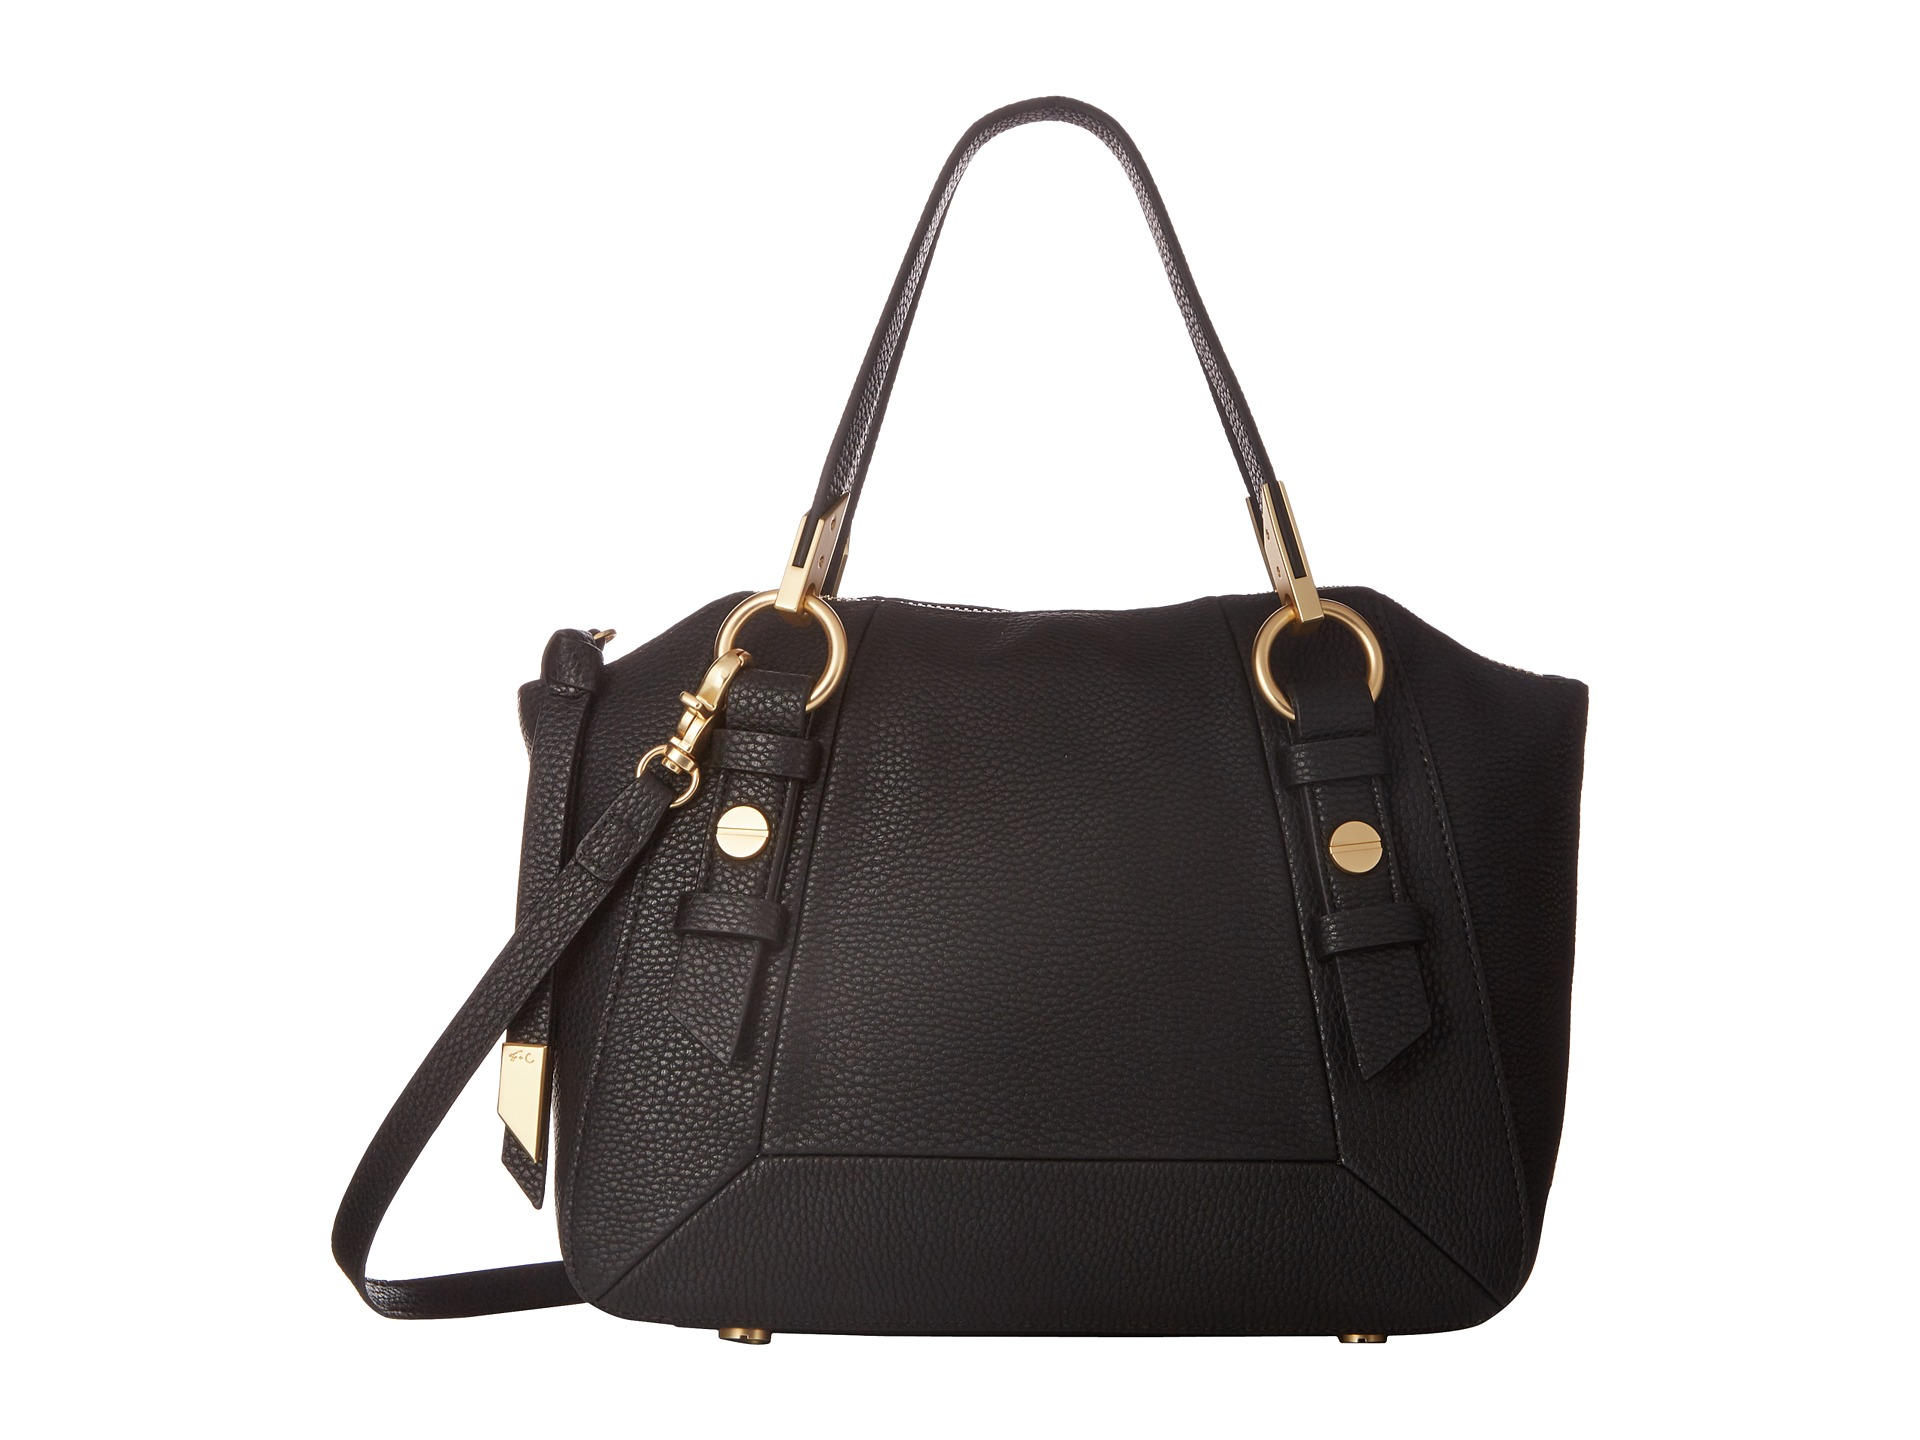 Foley + Corinna Handbags + Save this search Get a Sale Alert at Rue La La Bag $ $ Get a Sale Alert Free Shipping $+ at Nordstrom Rack Foley + Corinna Hygge Tower Small Ring Faux Leather Crossbody Bag $ $78 Get a Sale Alert Free Shipping $+ at.